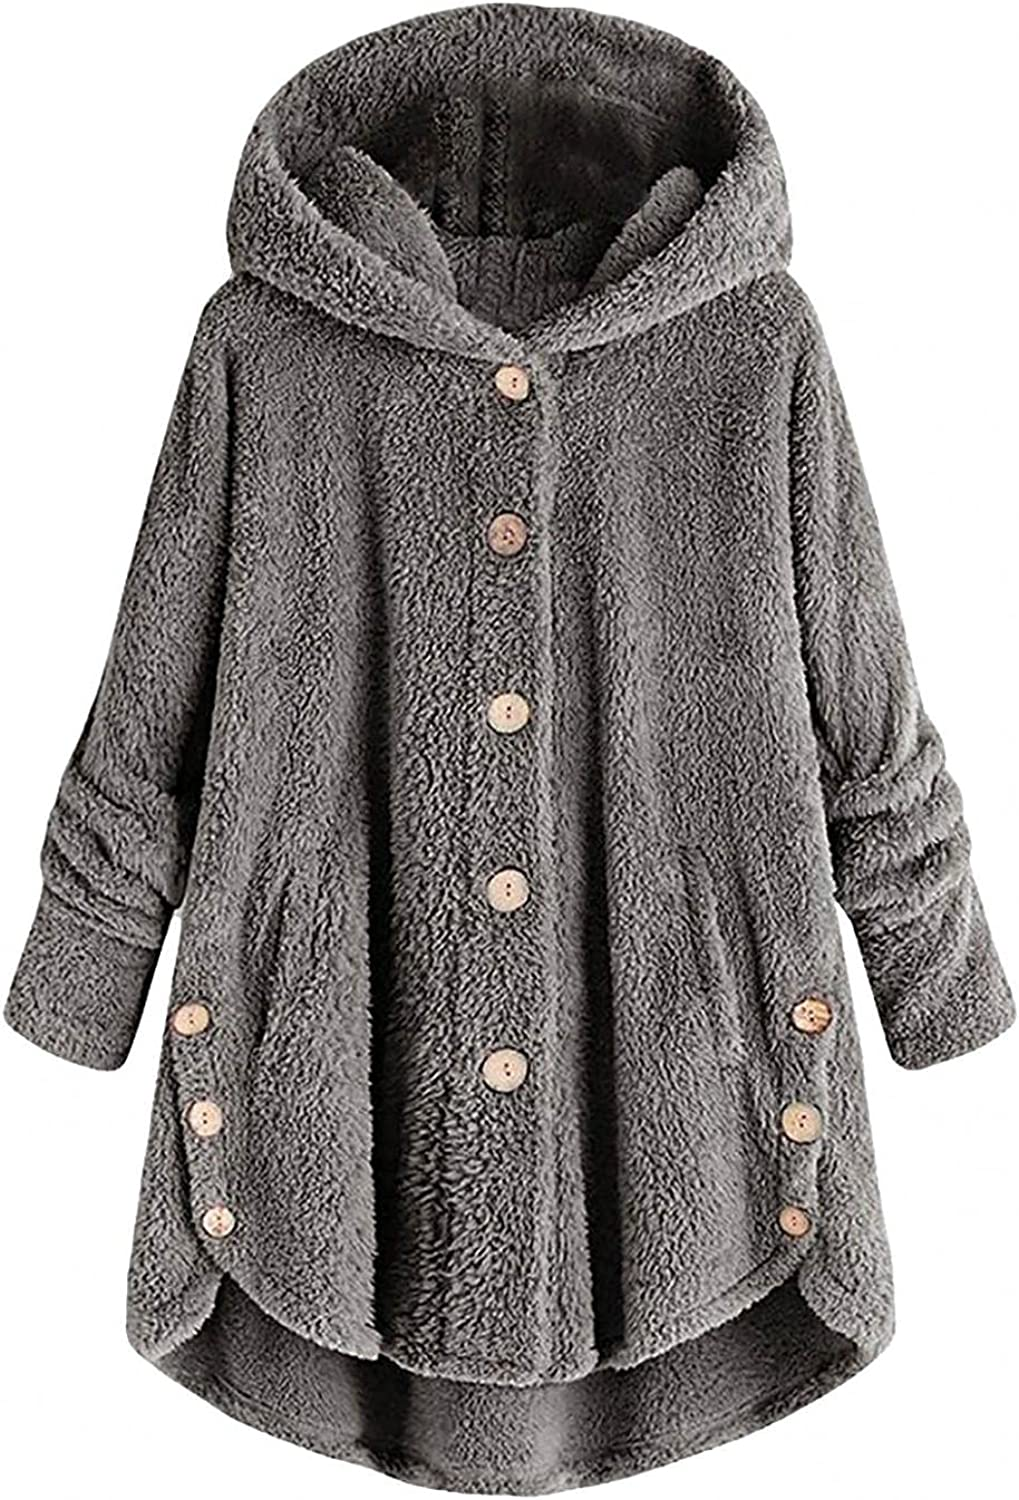 Womens Thigh Length Winter Jacket Button Wool Coat Plus Size Fluffy Fleece Teddy Coat Hooded Outwear with Pocket